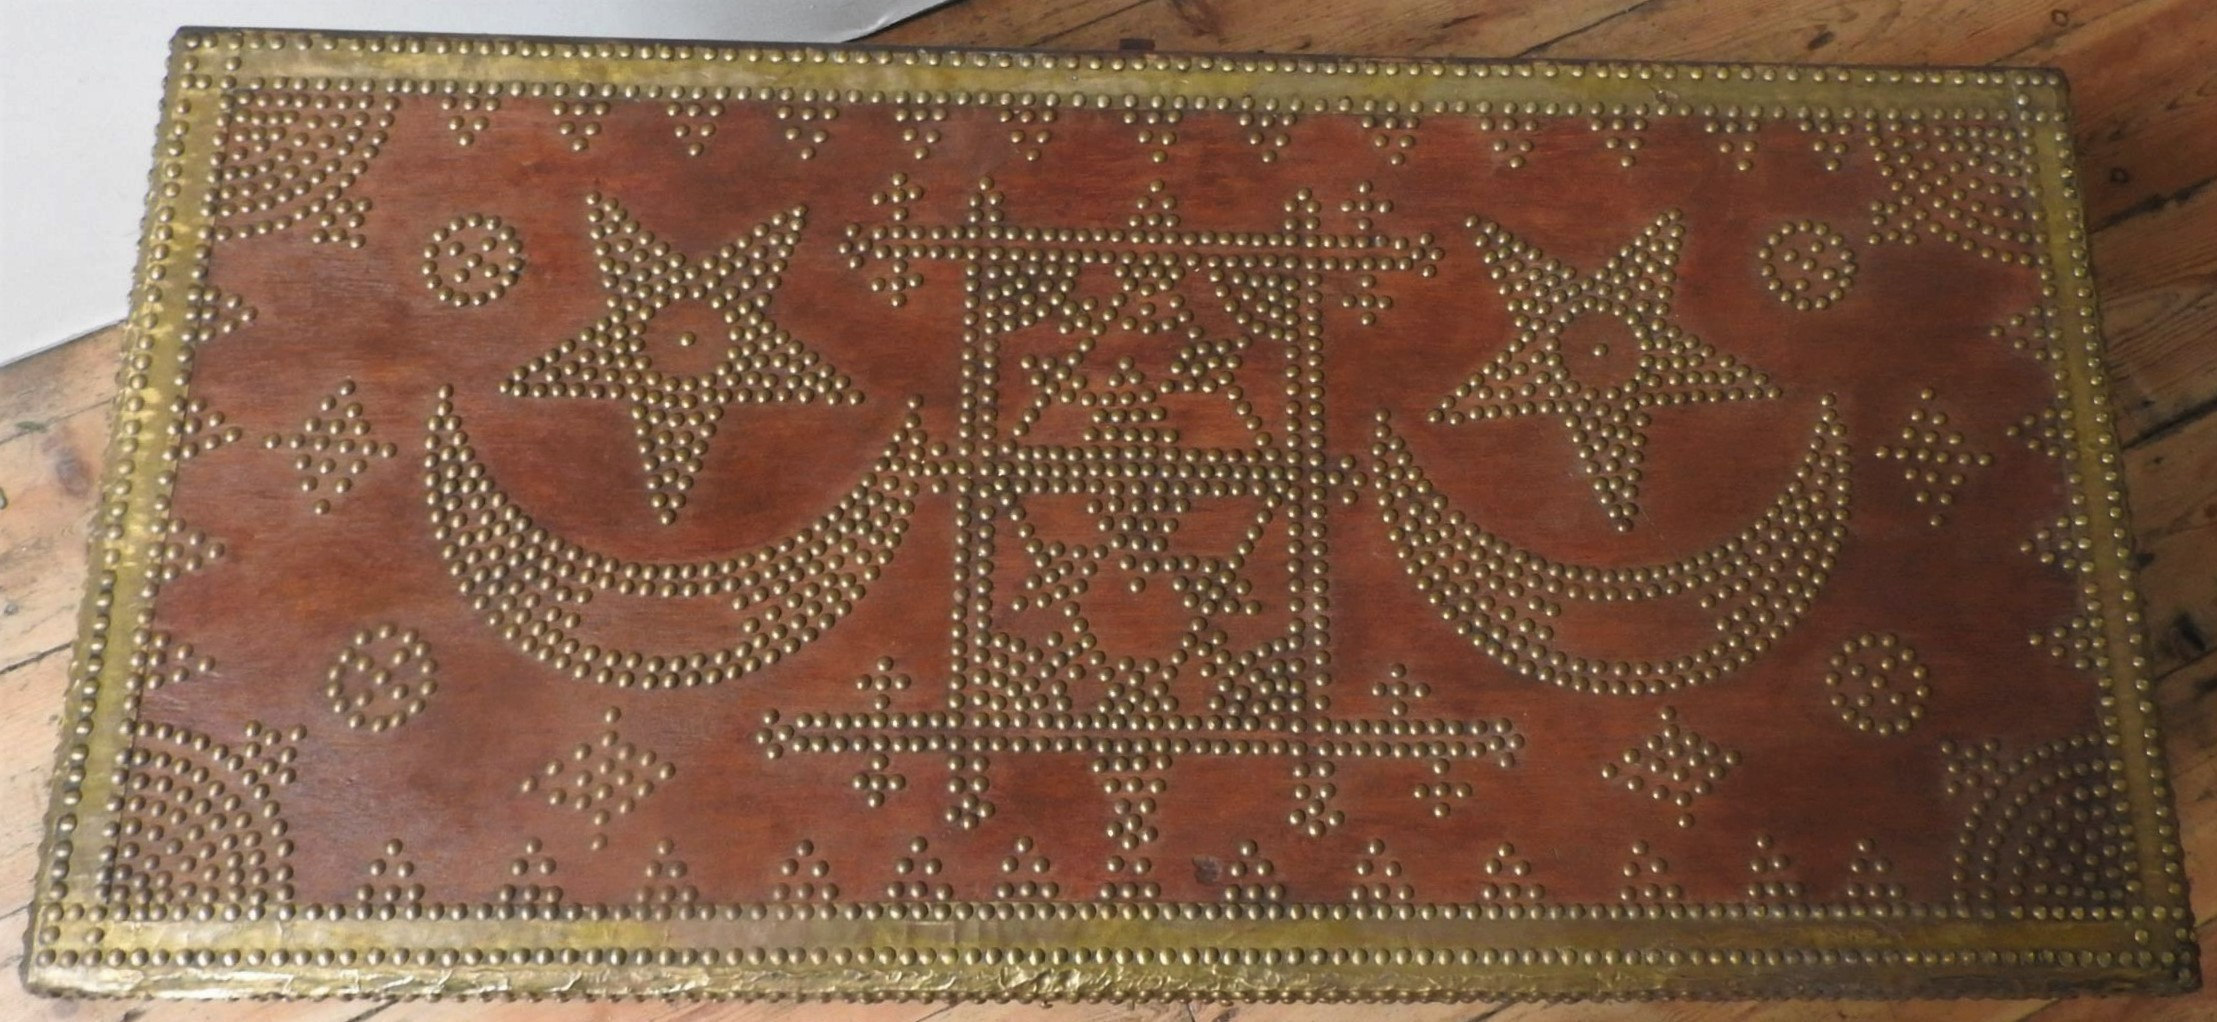 A MIDDLE EASTERN BRASS STUDDED BLANKET CHEST, with moon and star decoration, with two handles 47 x - Image 3 of 3